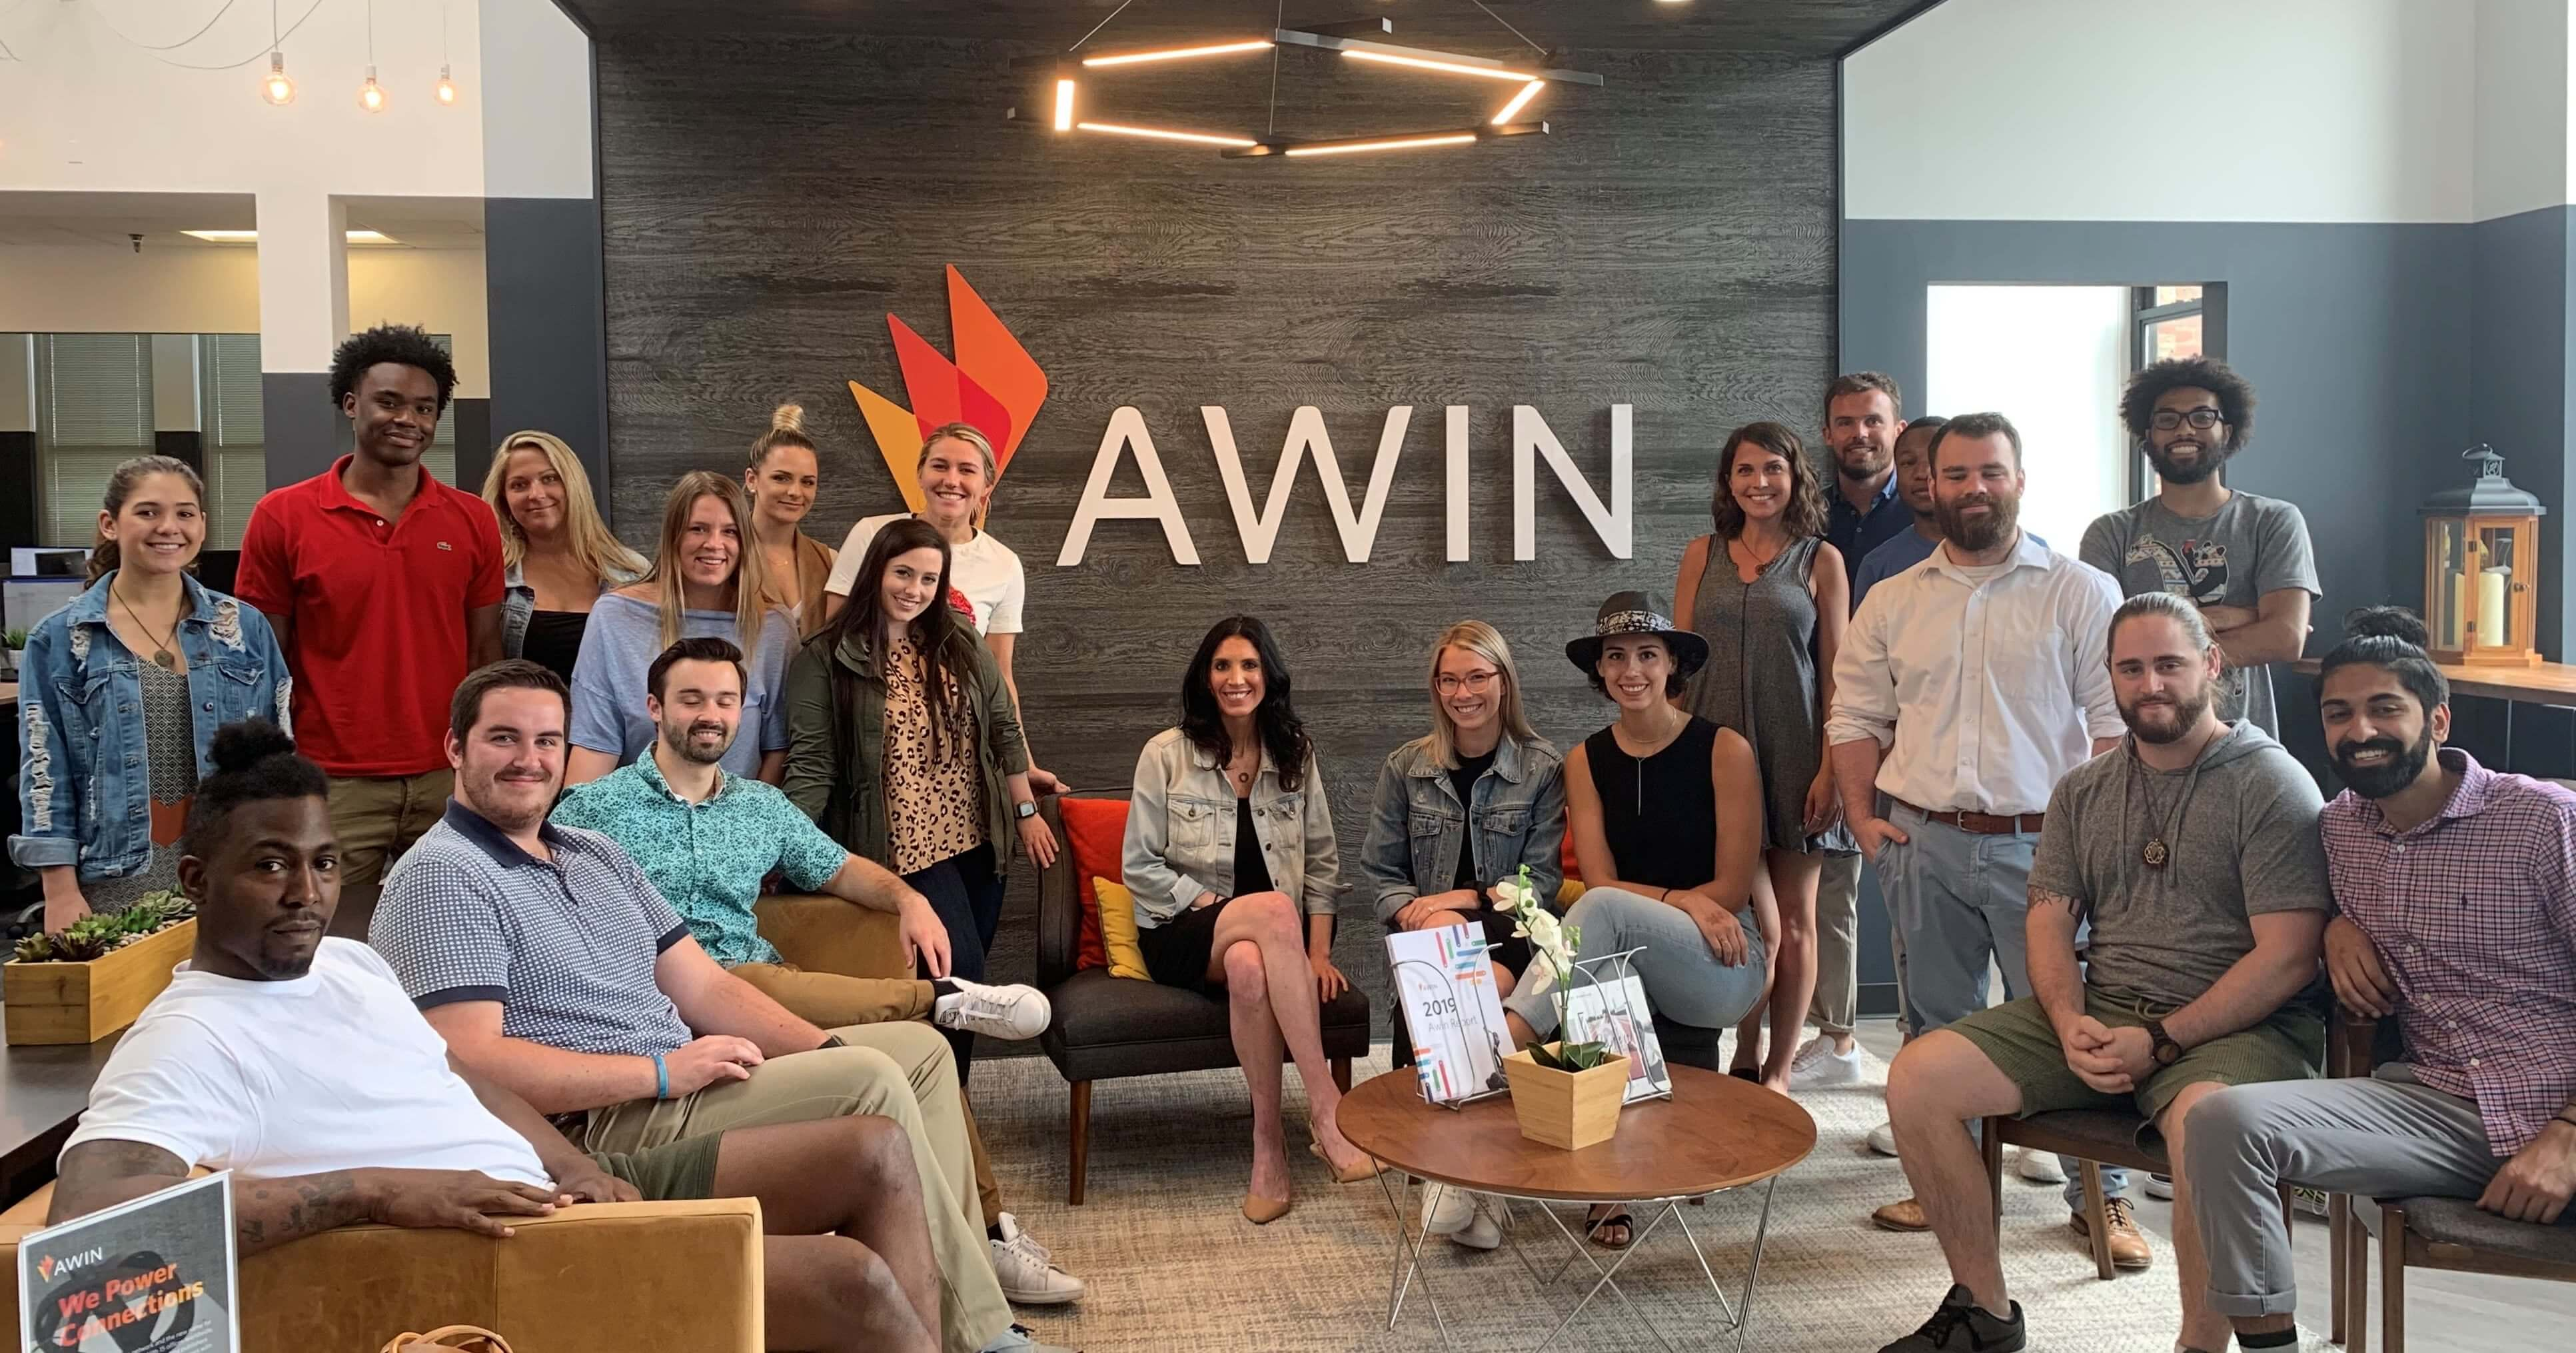 awin-team-office